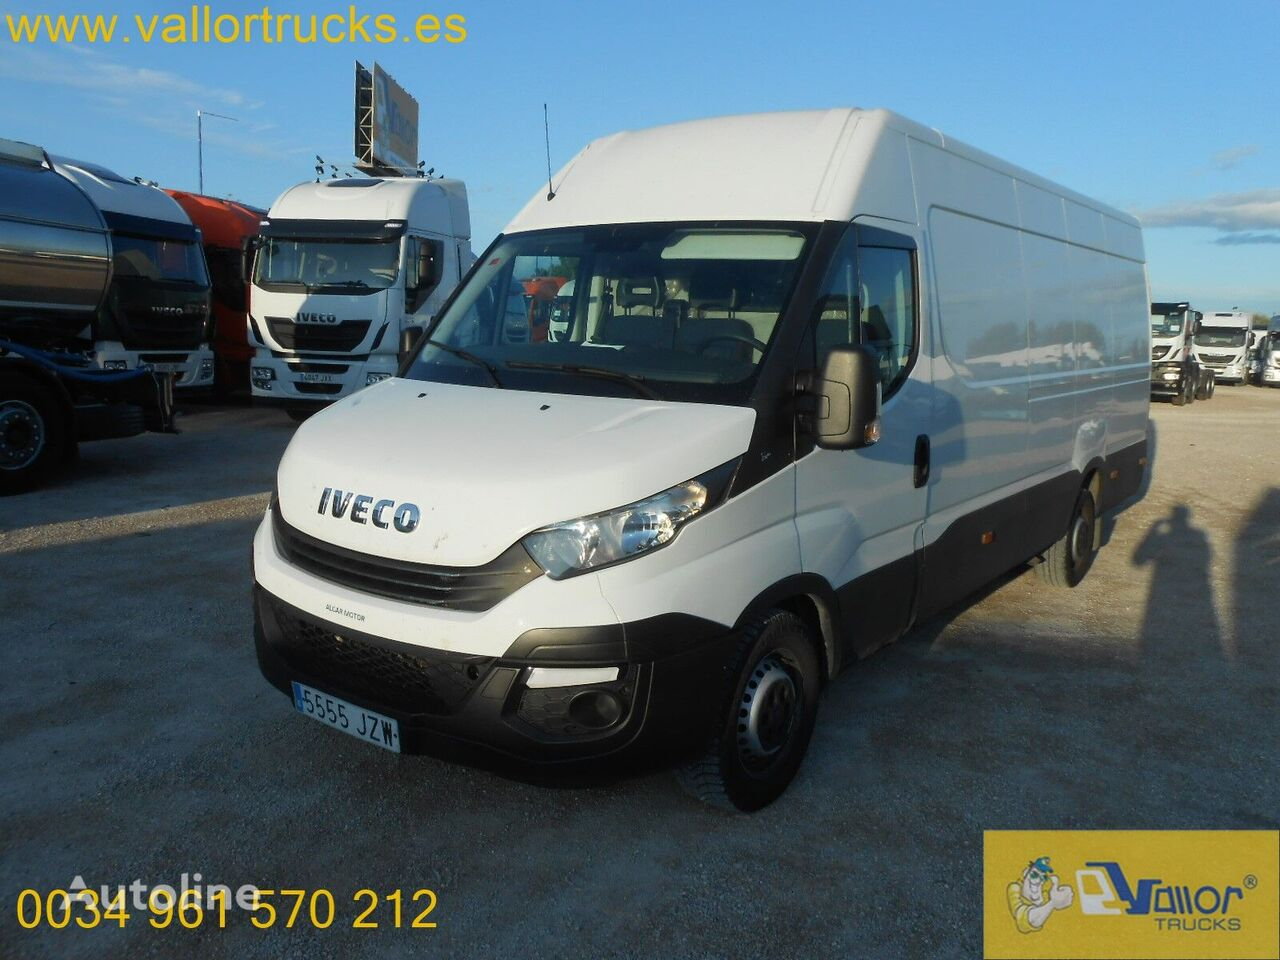 IVECO Daily 35 - 160 closed box van